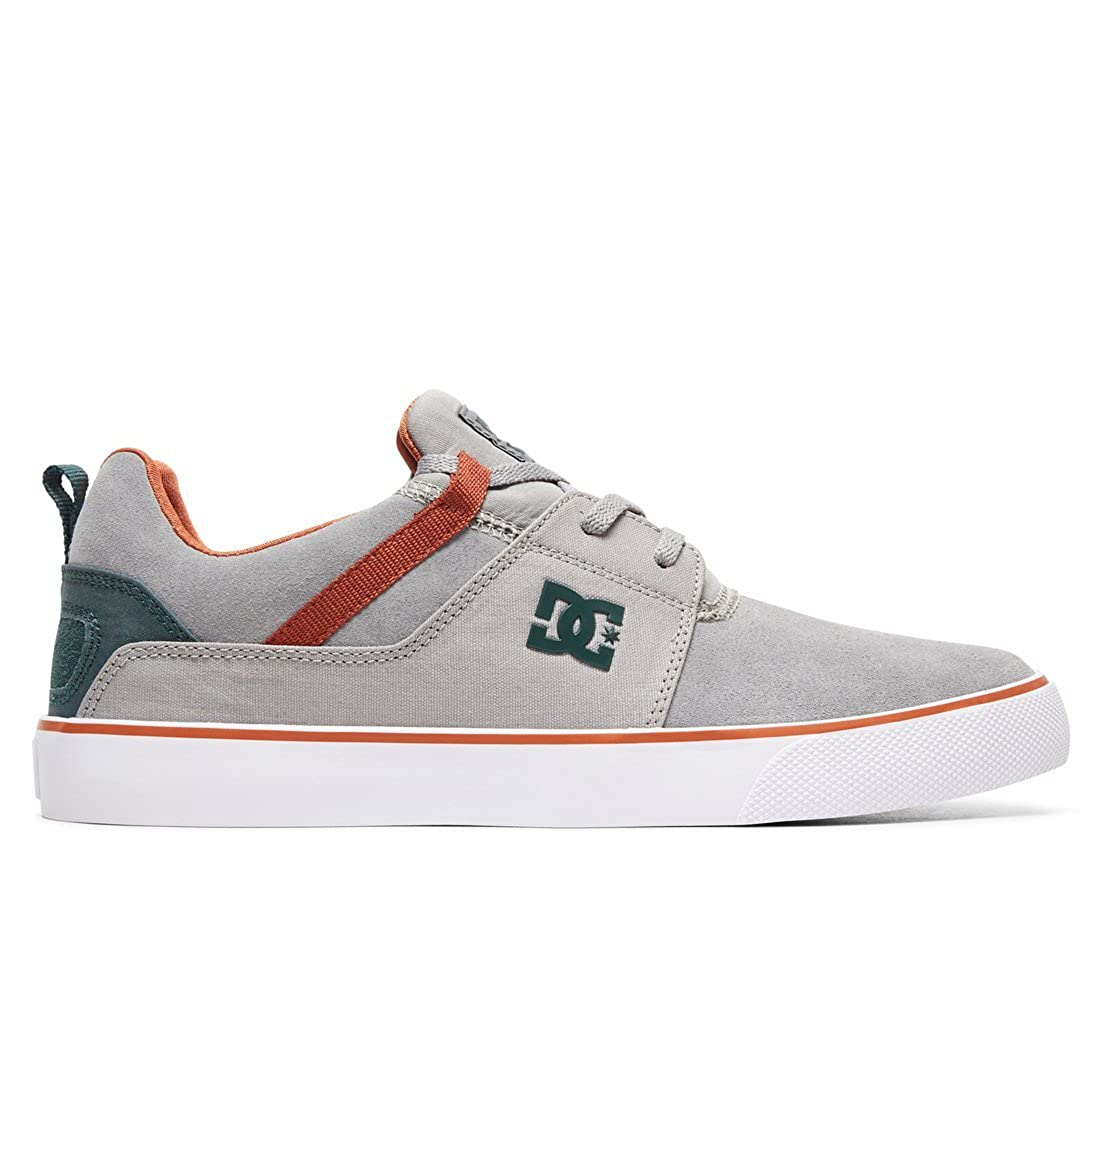 DC schuhe Herren Heathrow Heathrow Herren Vulc Skateboardschuhe e1266d